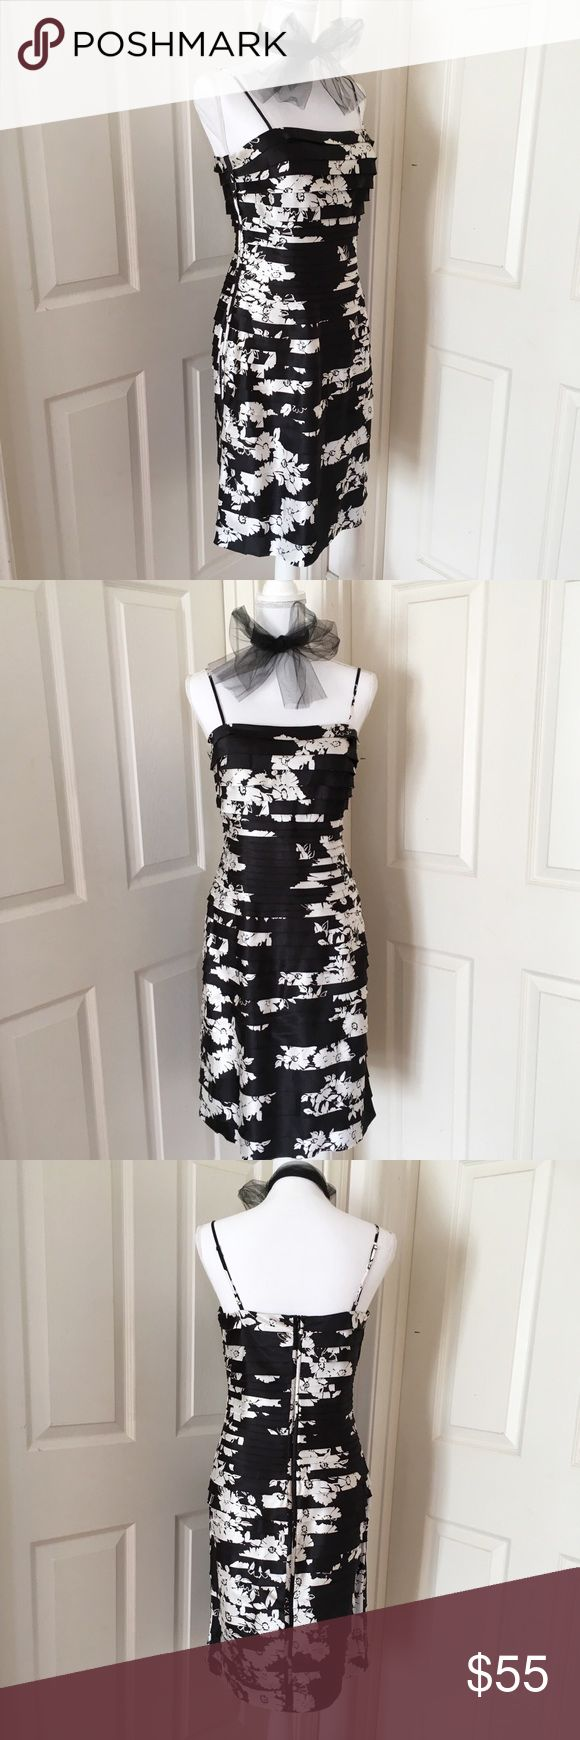 "Black & White Floral Cocktail Dress Tiered strips of soft satin fabric hug in all the right places for total figure flattery.  Features  fabric binding along the sides and the invisible zip in the back, adjustable shoulder straps, and a BUILT-IN-BRA(❤️ this!!)  GUC (very conservative estimate).   Approx. Finished Measurements:  B: 34""  W: 30""  H: 40""  L from W to hem: 25""  Pls carefully review pictures. Know your measurements. Feel free to ask any ❓'s. White House Black Market Dresses Midi"